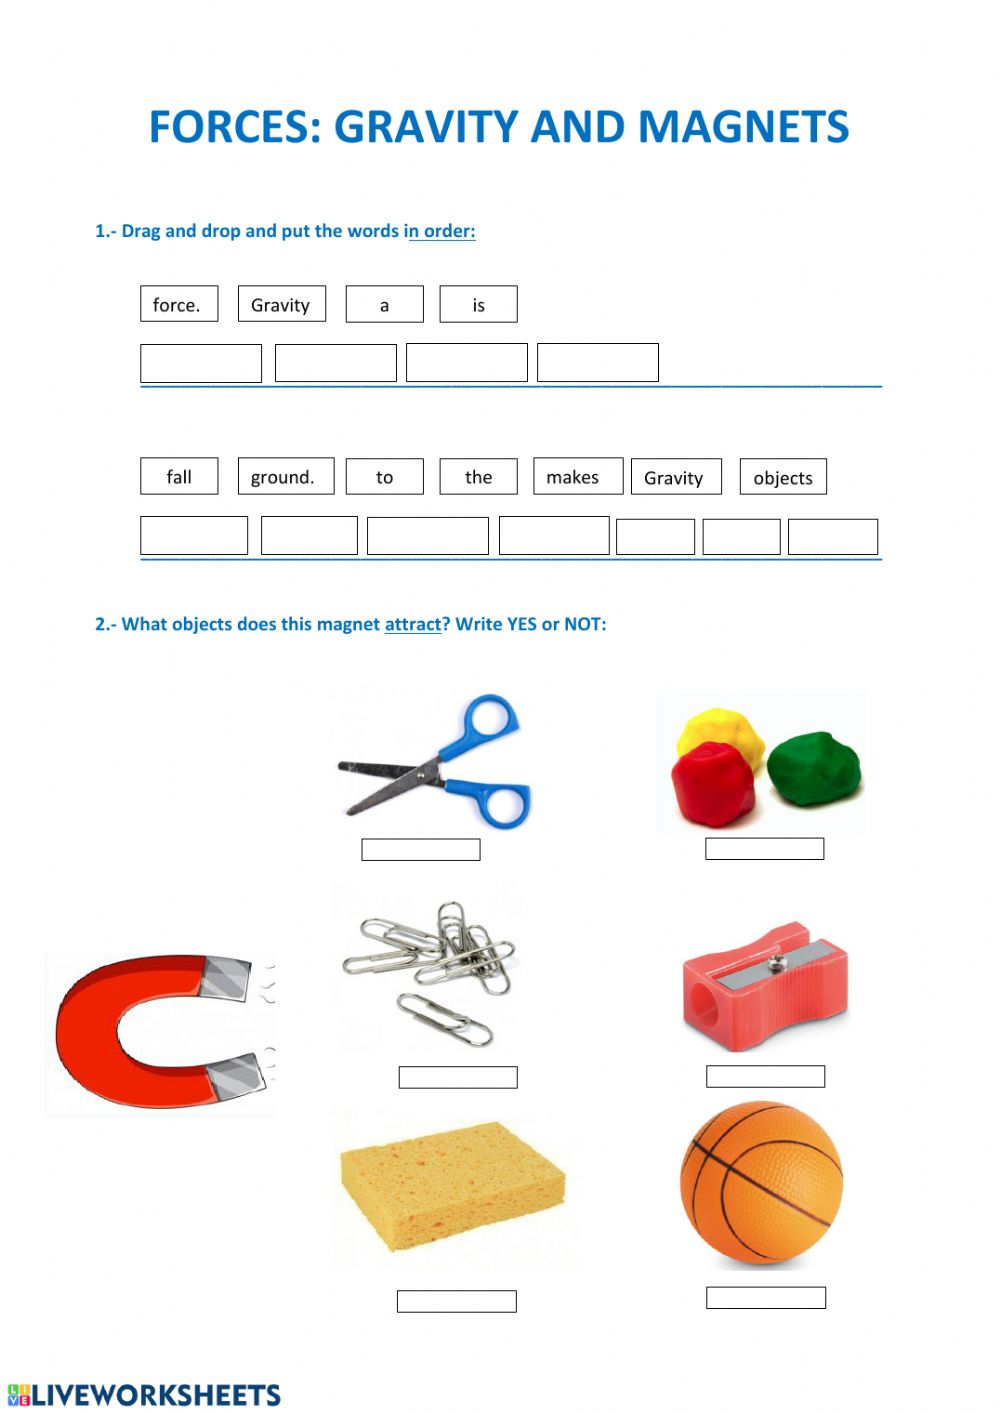 medium resolution of Gravity and magnets worksheet